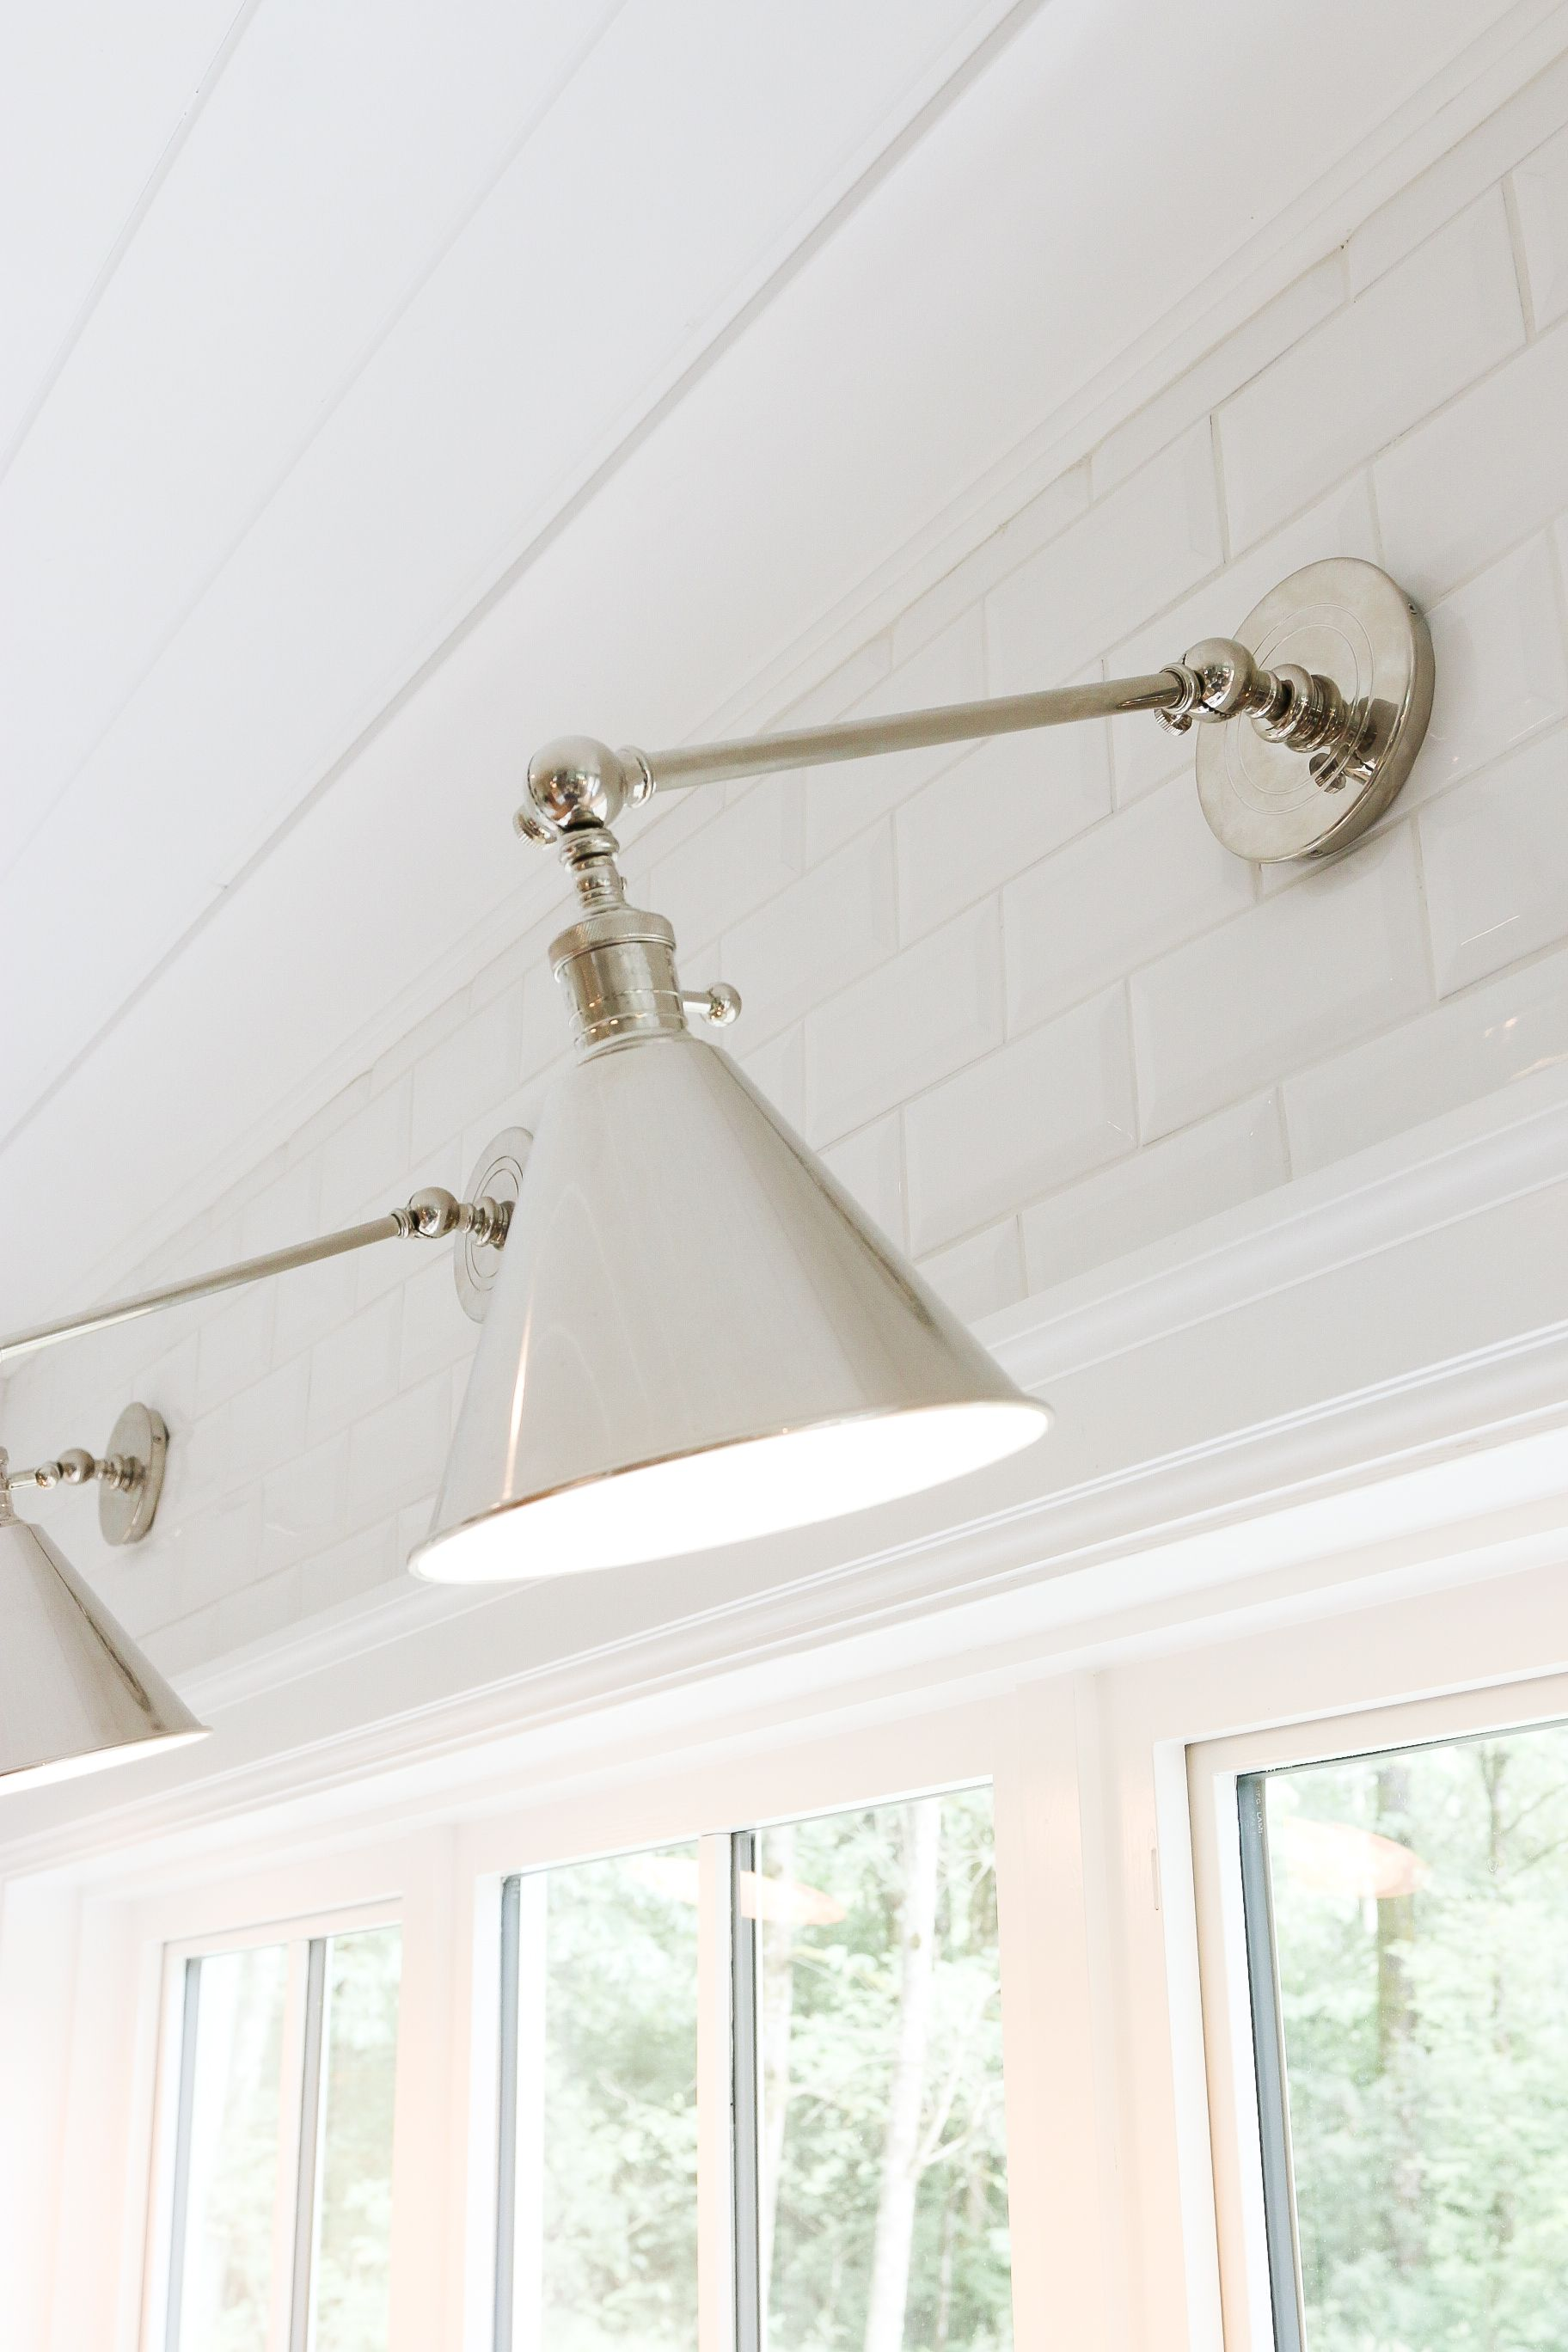 Monika hibbs boston functional single arm library light by e f chapman in polished nickel available at circalighting com